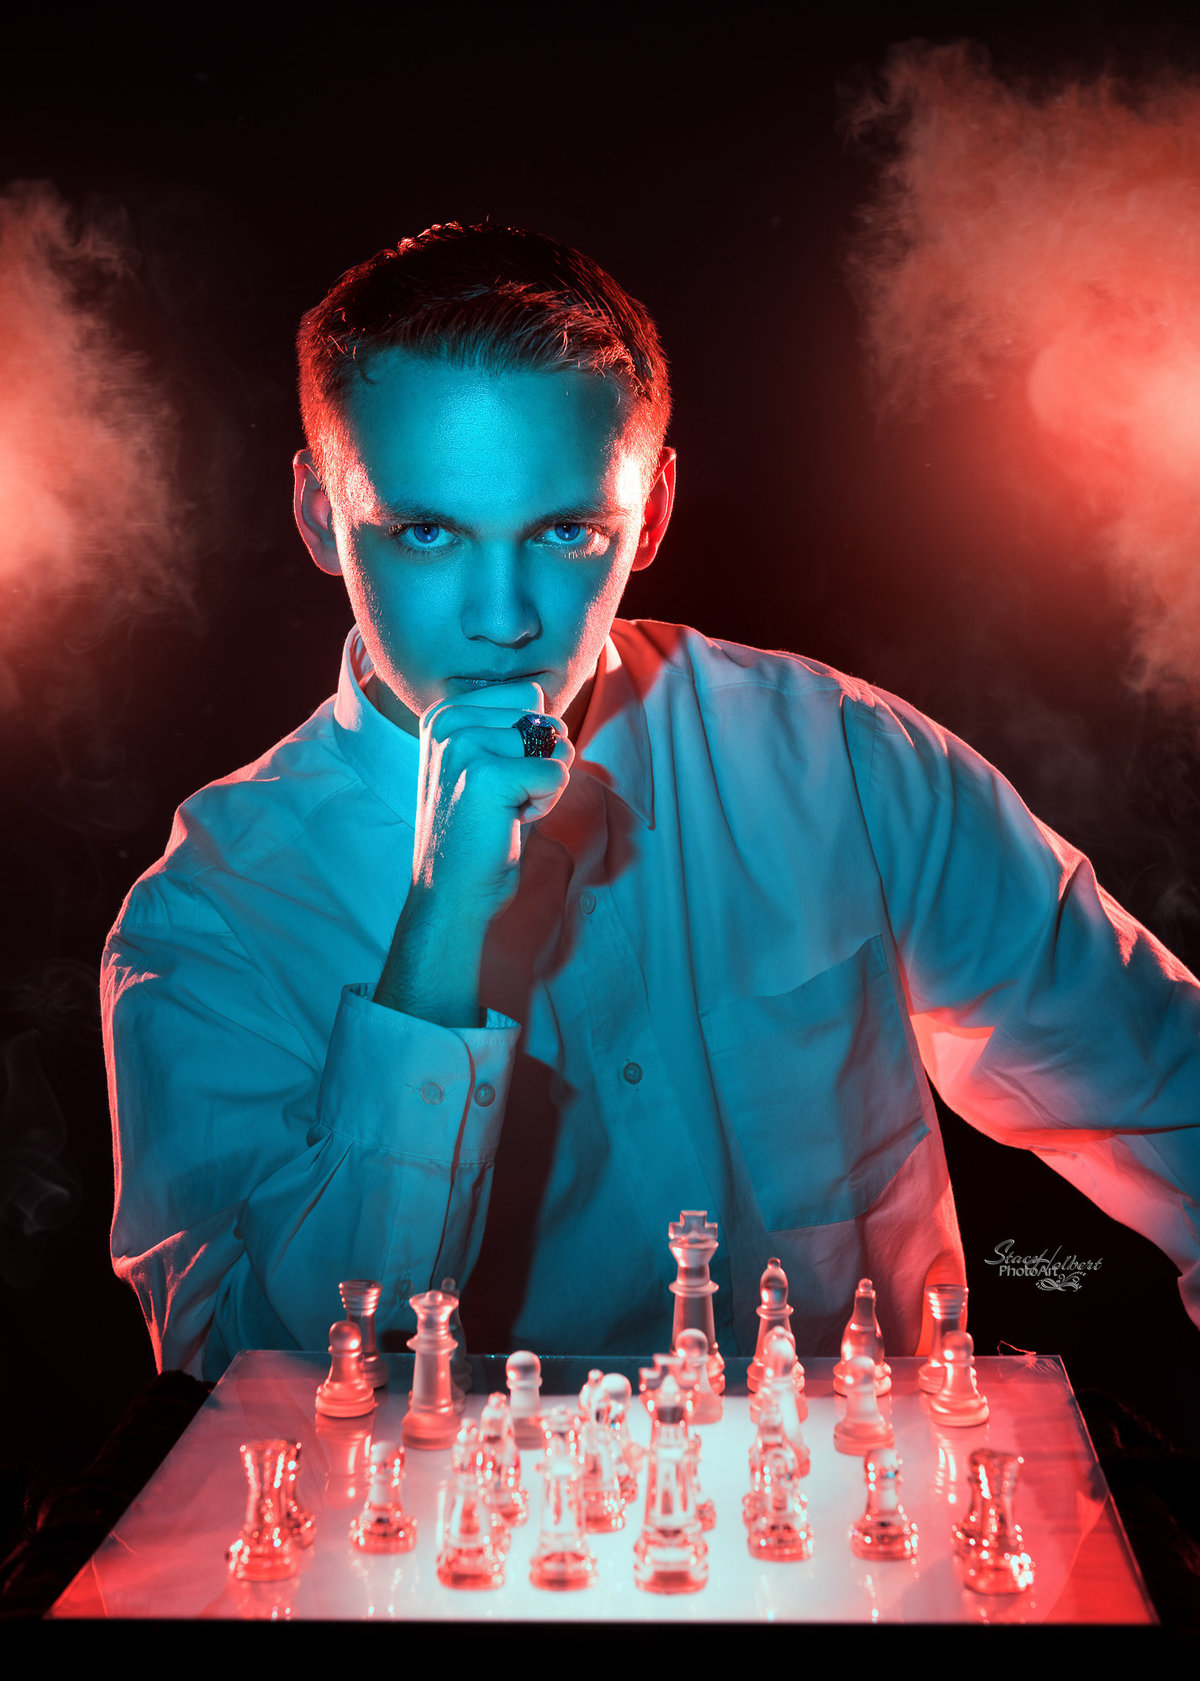 Creative senior portrait with chess set using color gel lights